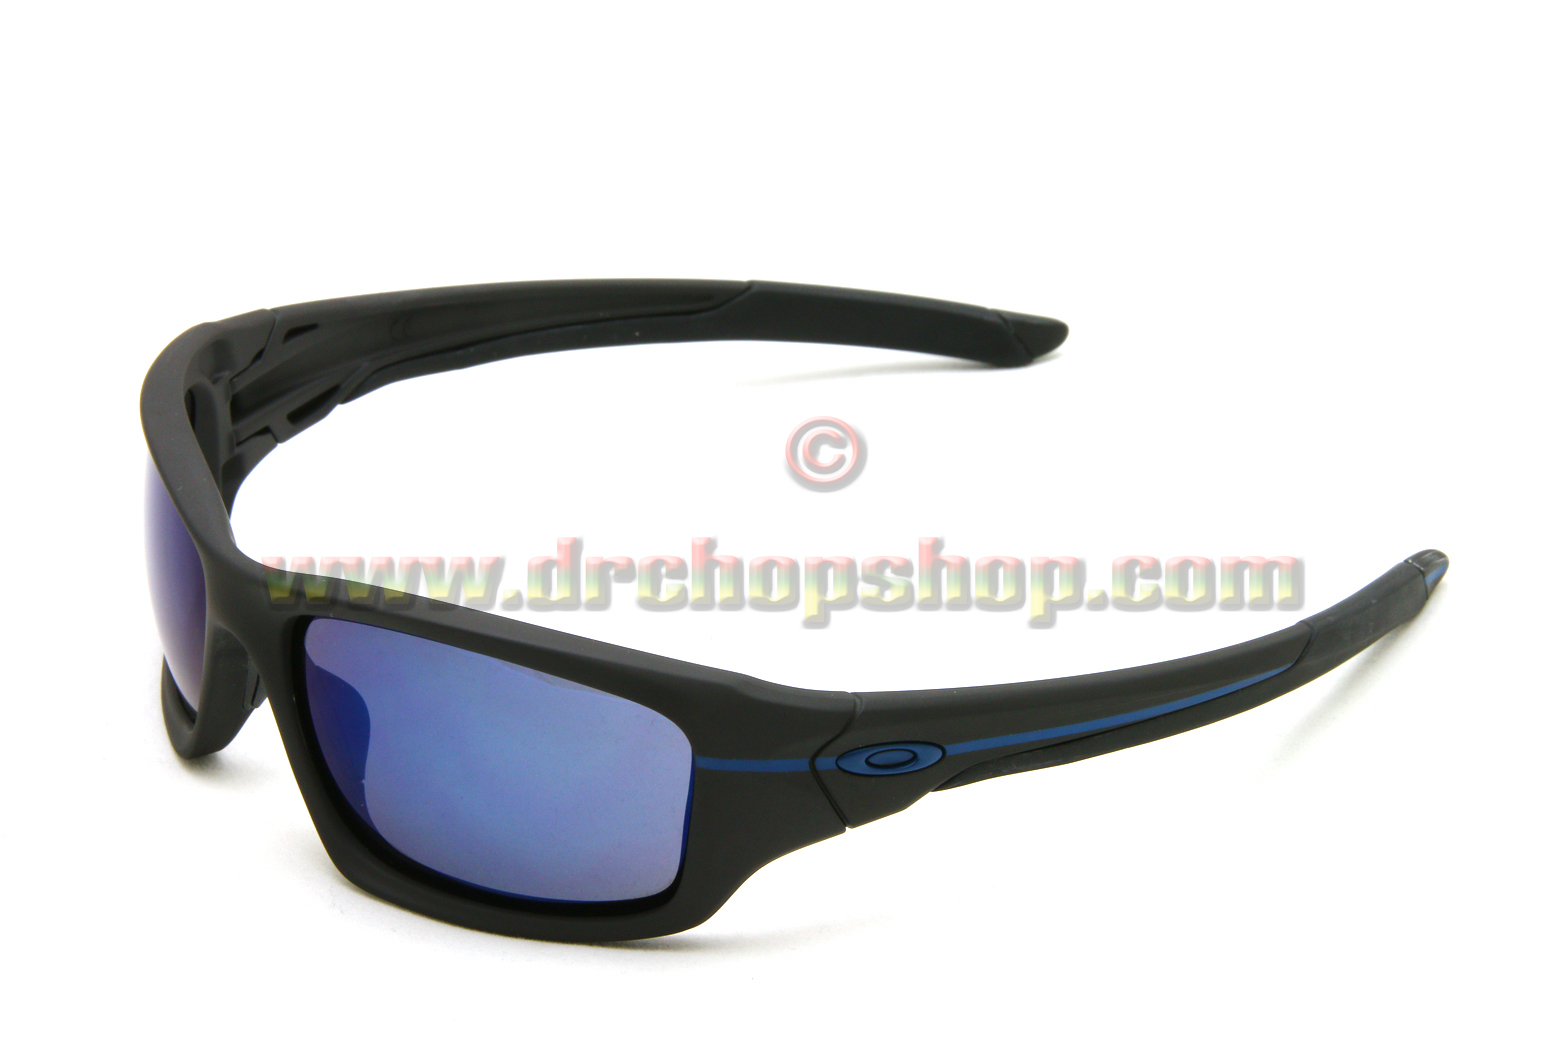 141fa76806 Oakley Valve Sunglasses Amazon